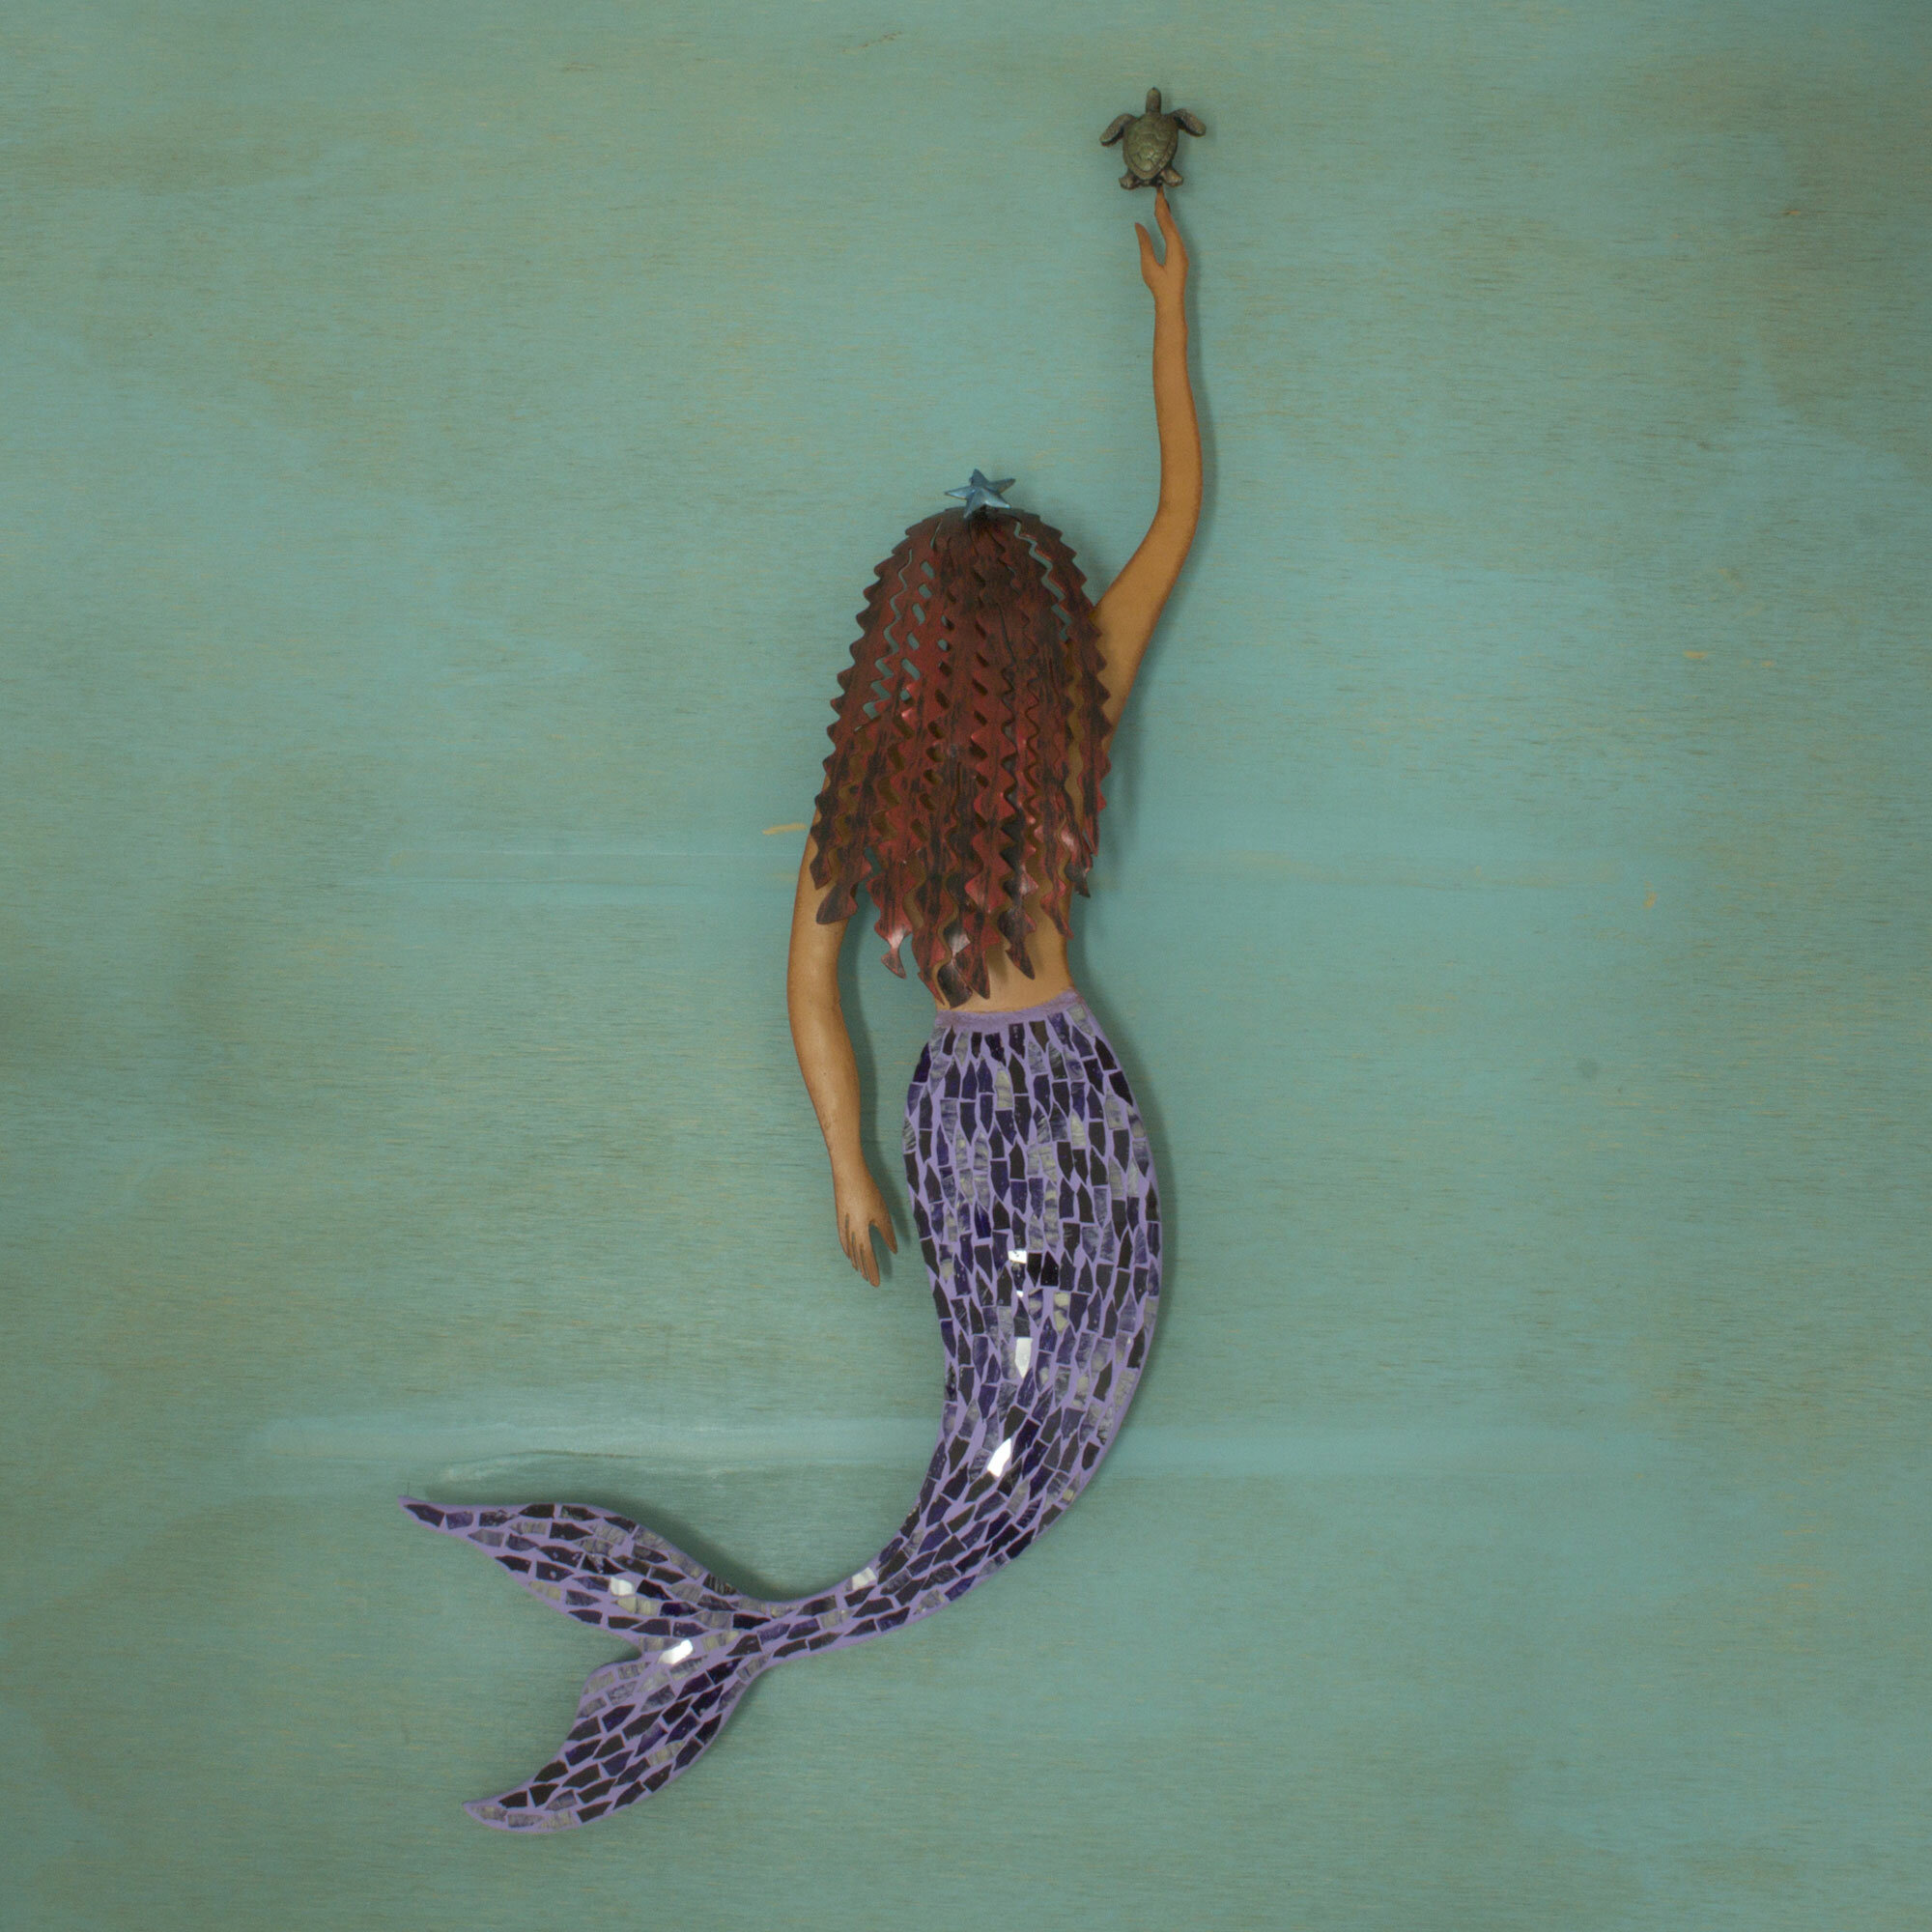 World Menagerie Alister Artisan Crafted Mermaid And Turtle Mosaic Ocean Friends Mexican Iron And Glass Home And Room Wall Decor Reviews Wayfair